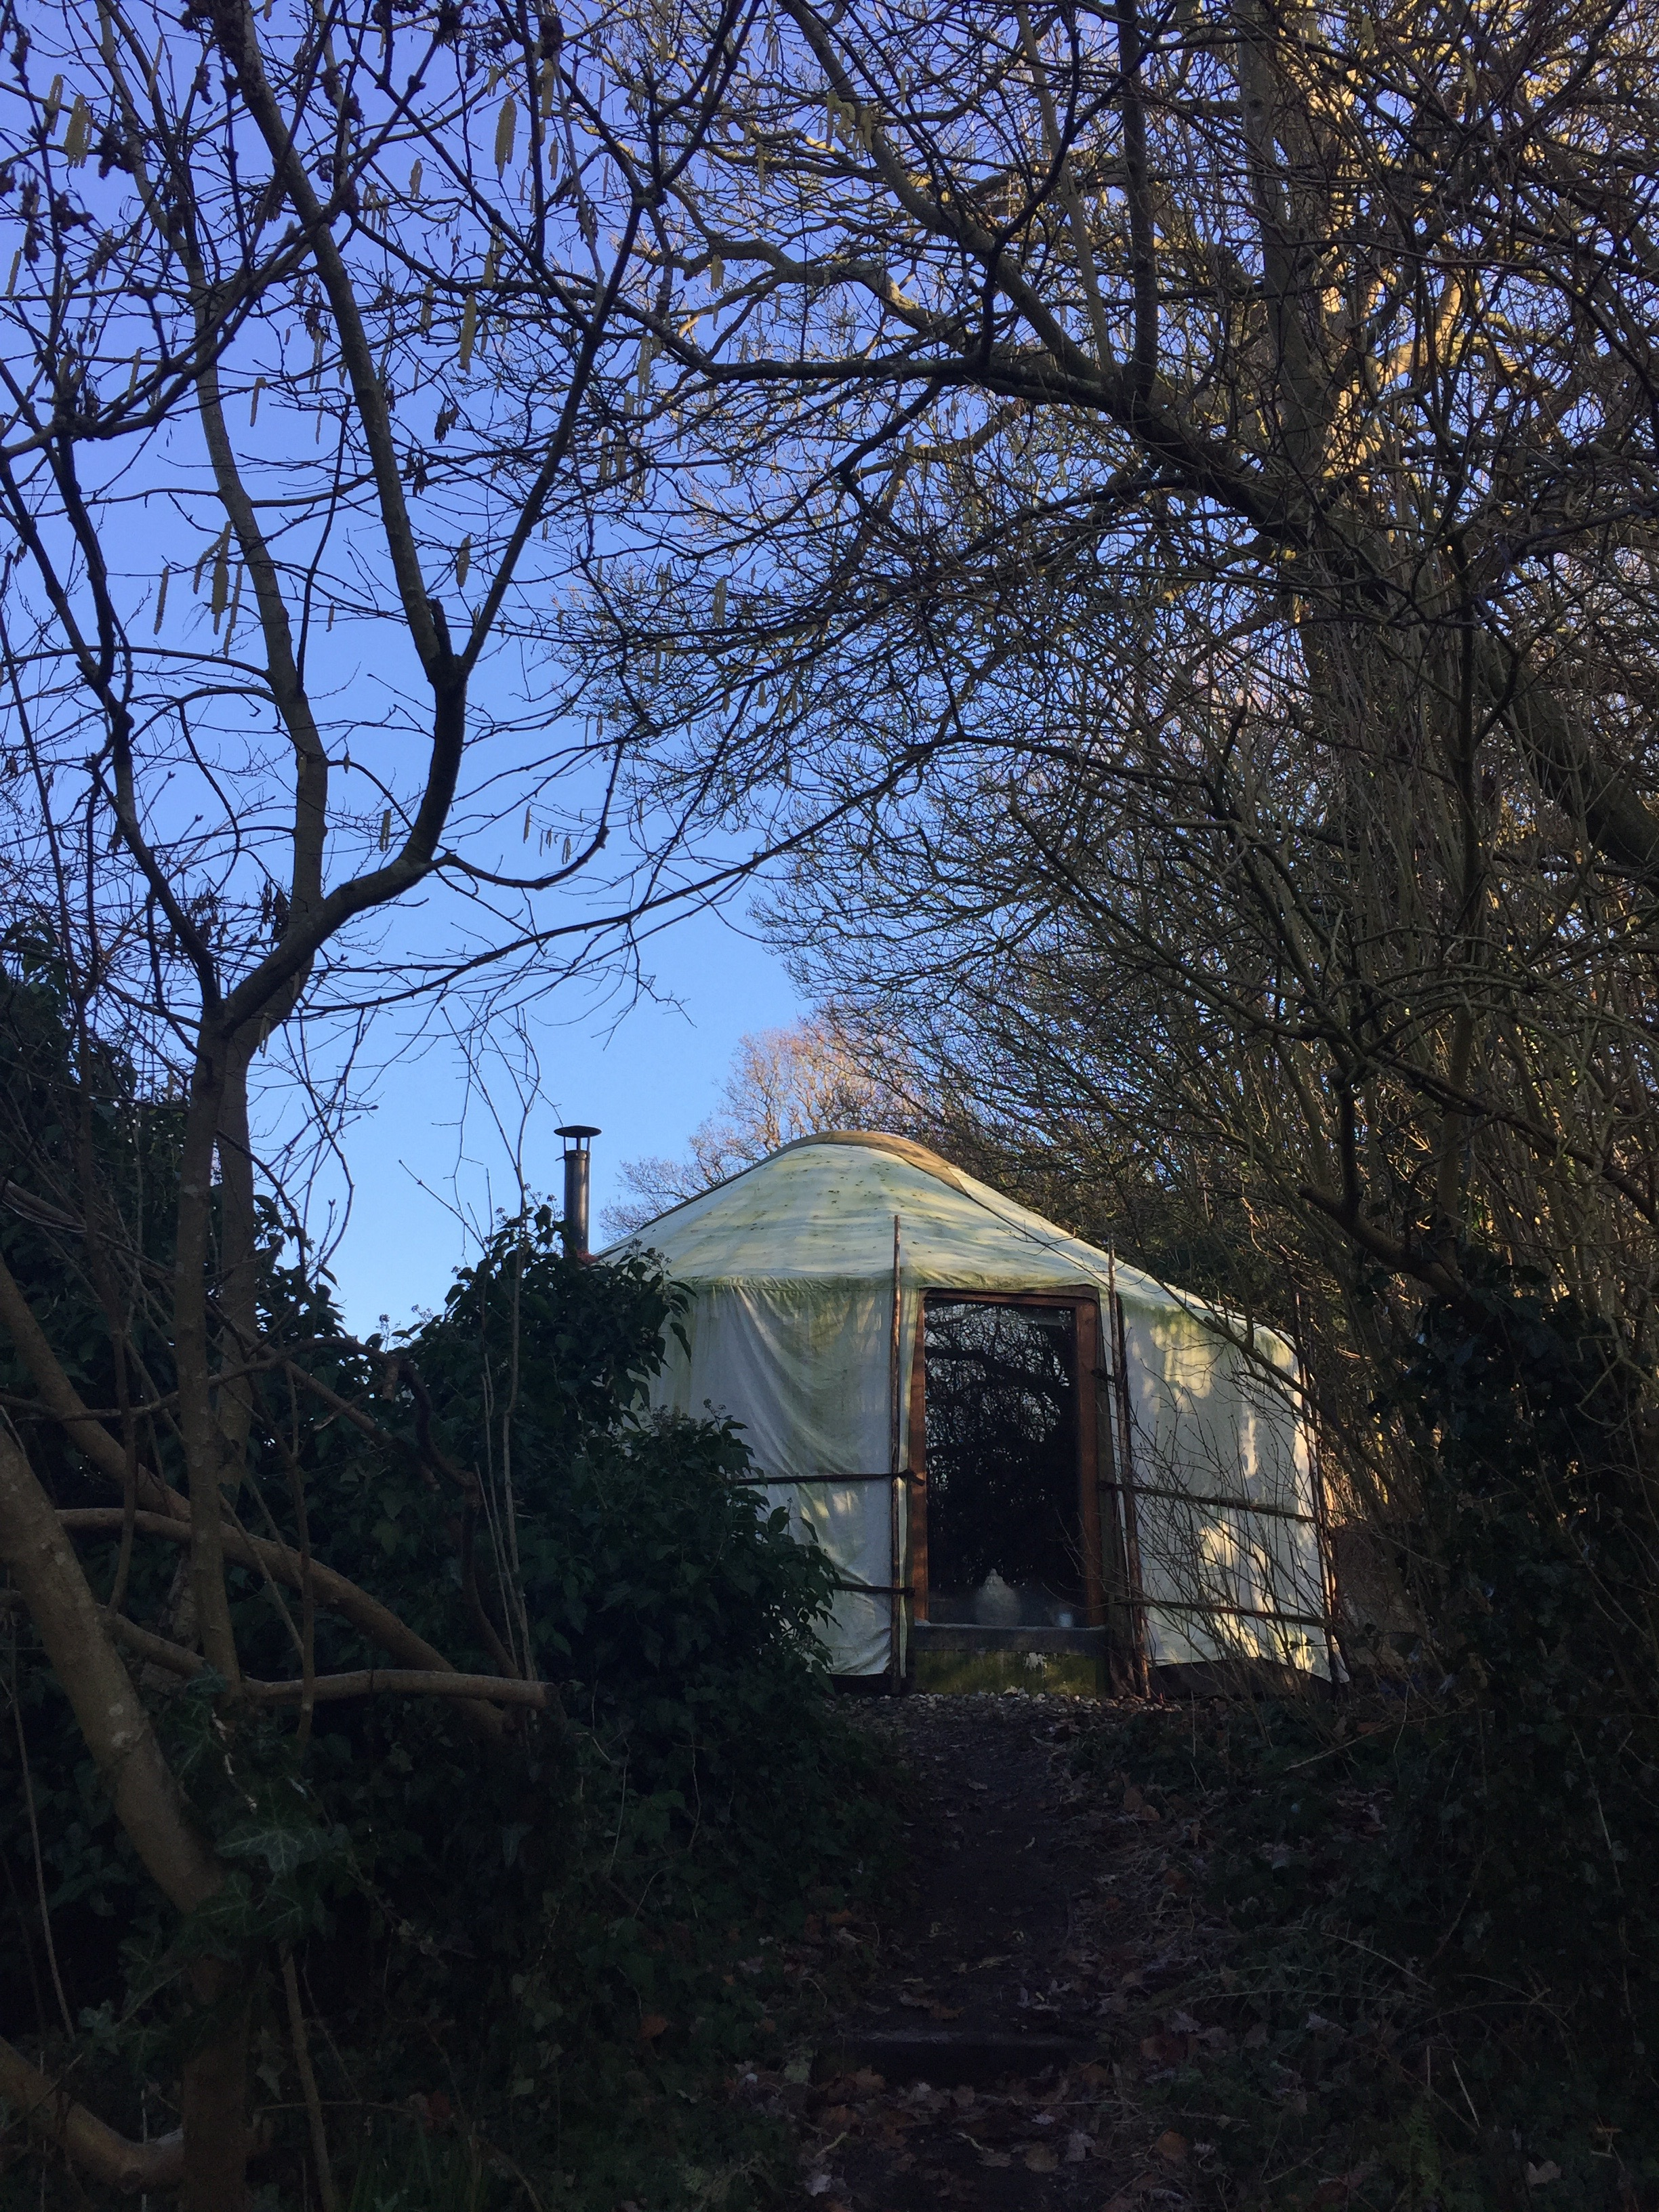 The yurt in winter